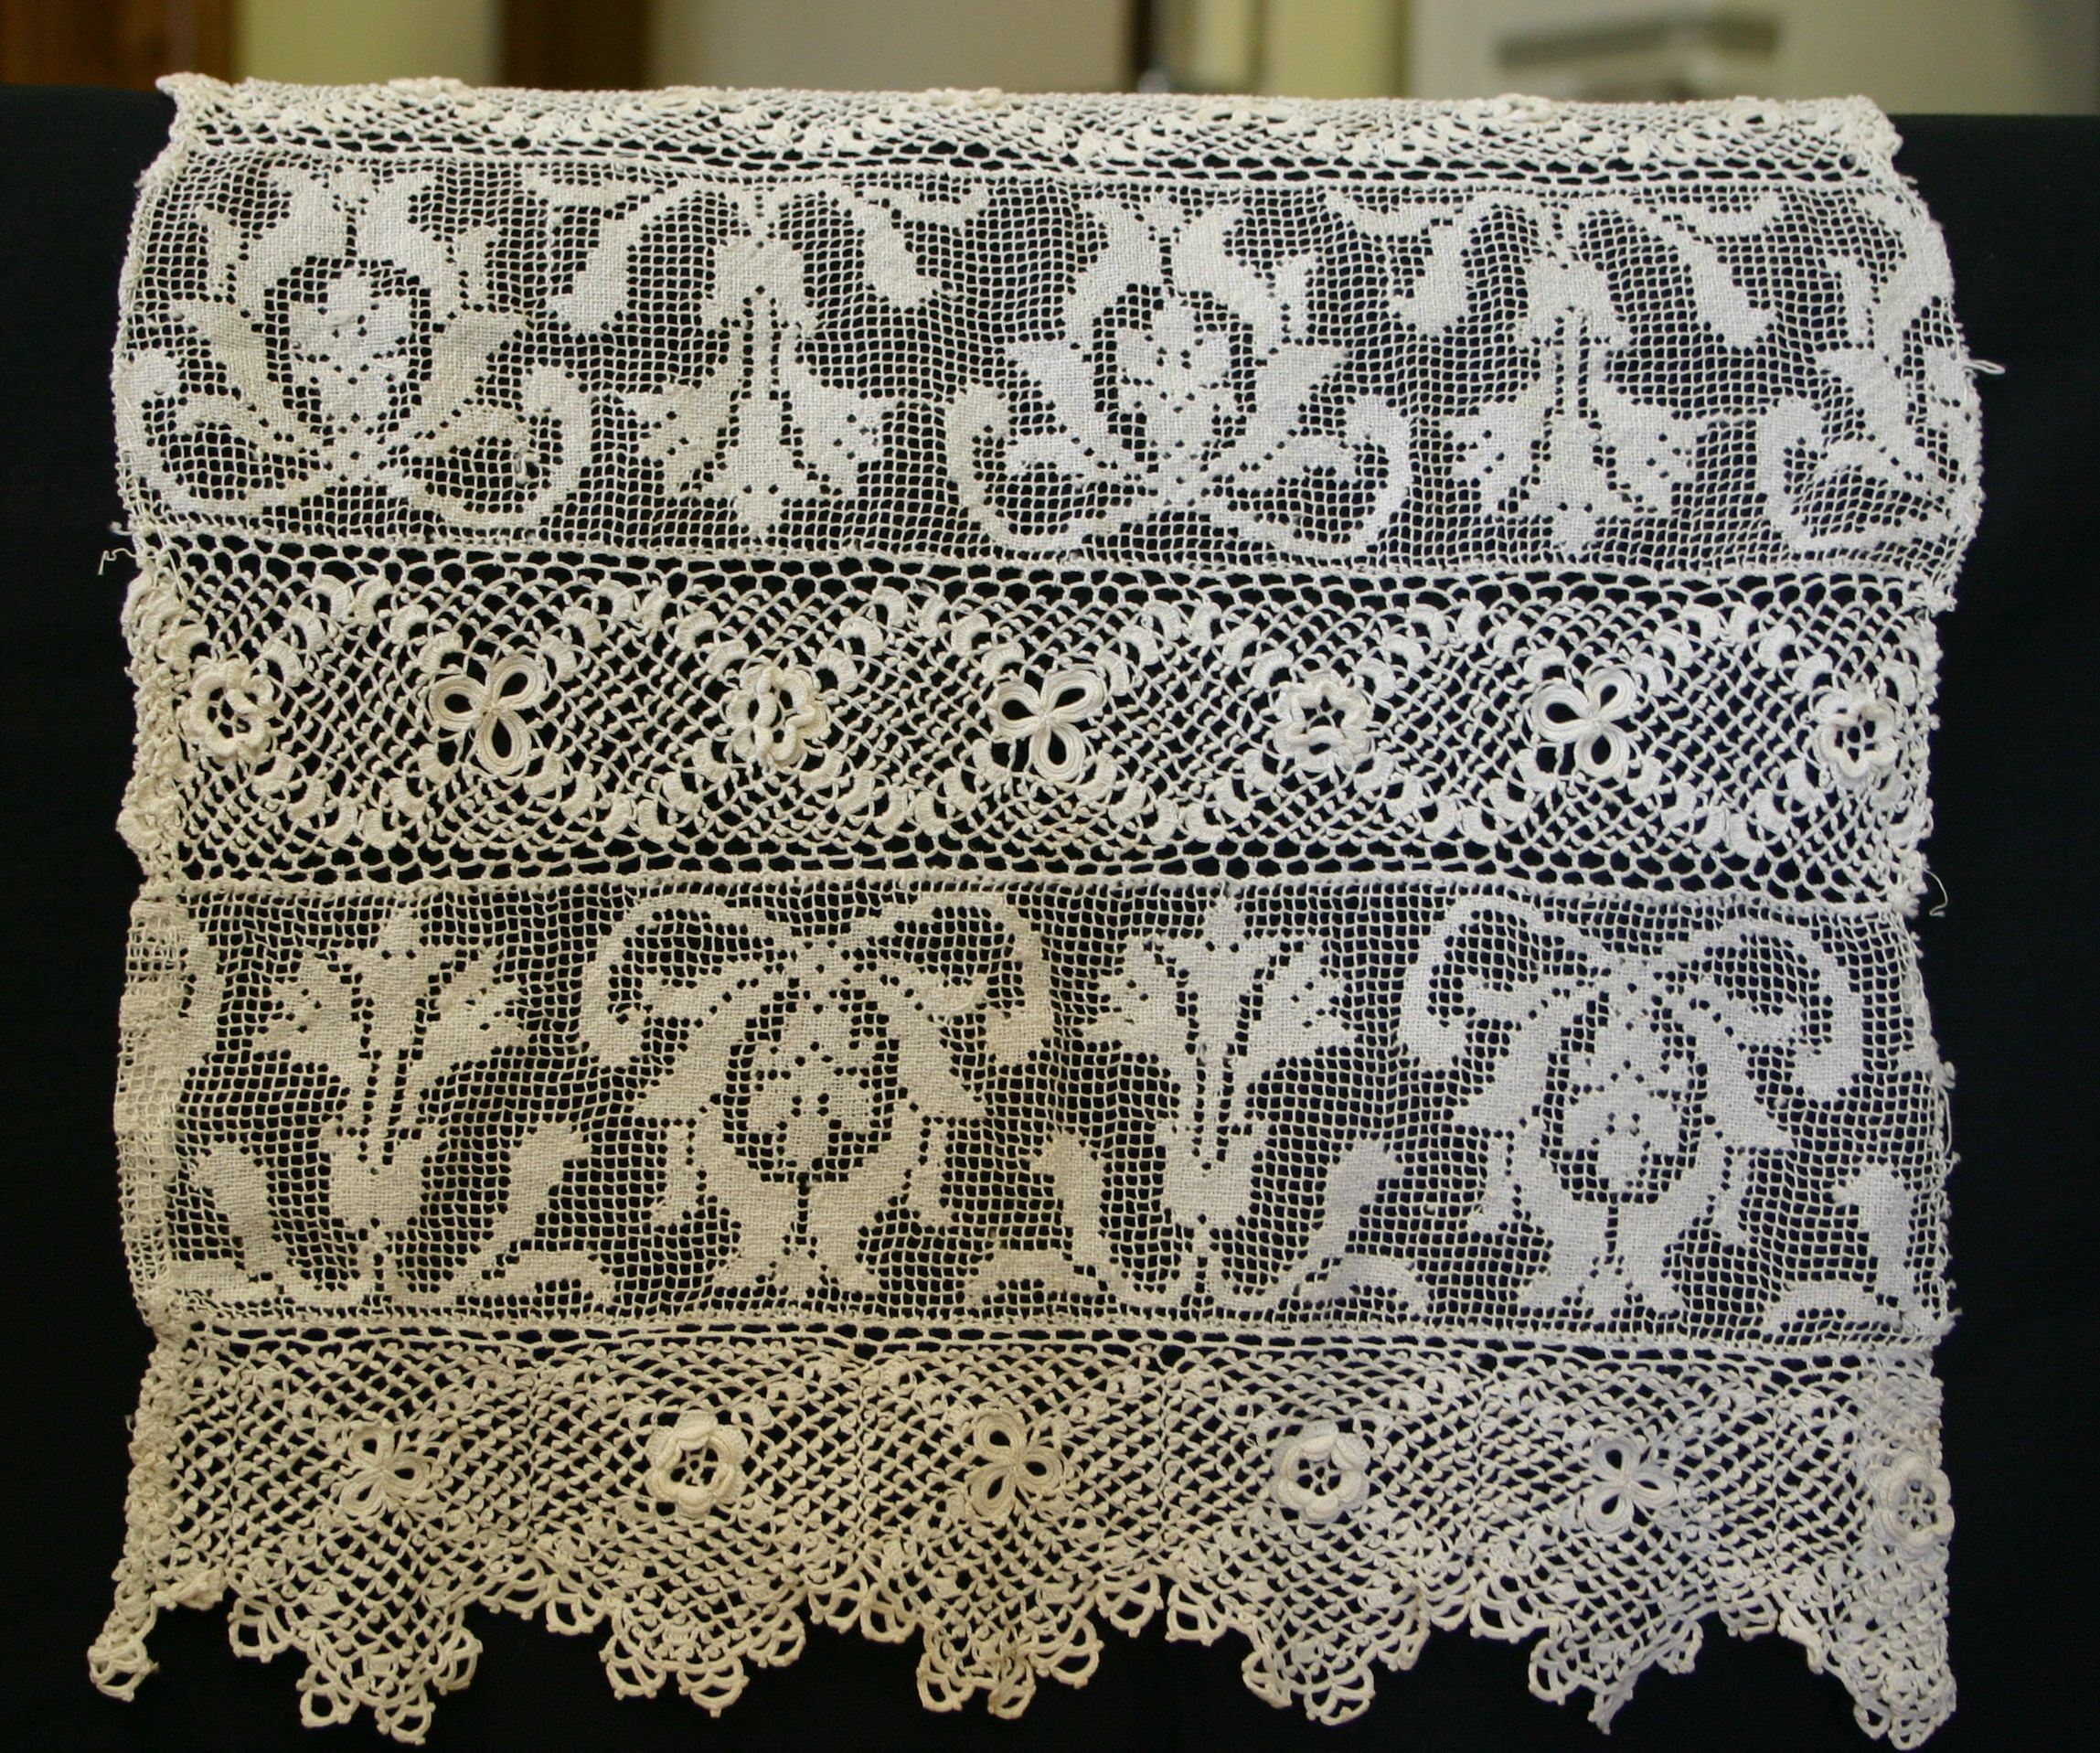 This piece is over 100 years old and made up of panels of irish this piece is over 100 years old and made up of panels of irish crochet and lace crochet patternscrochet pattern freecrochet bankloansurffo Gallery